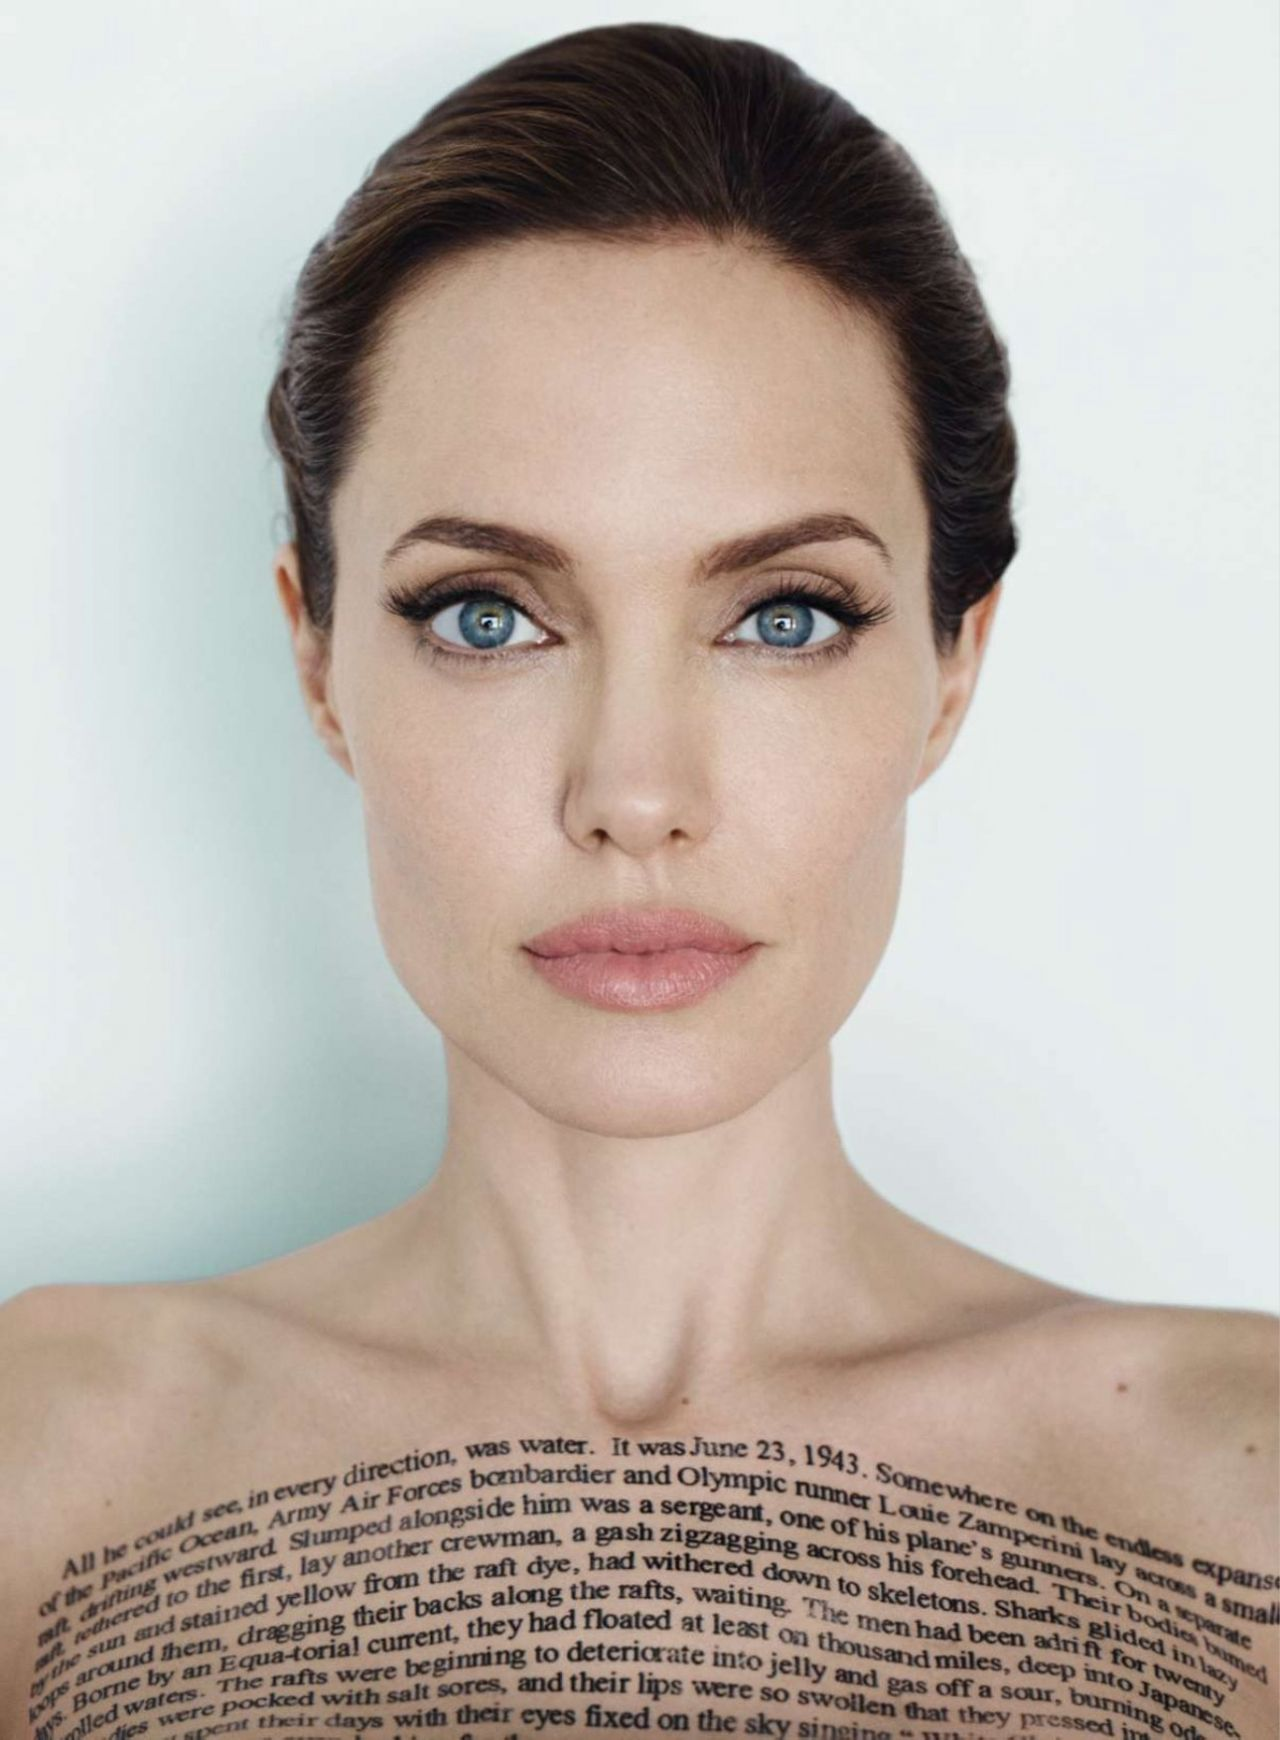 Angelina Jolie Vanity Fair Magazine December 2014 Issue